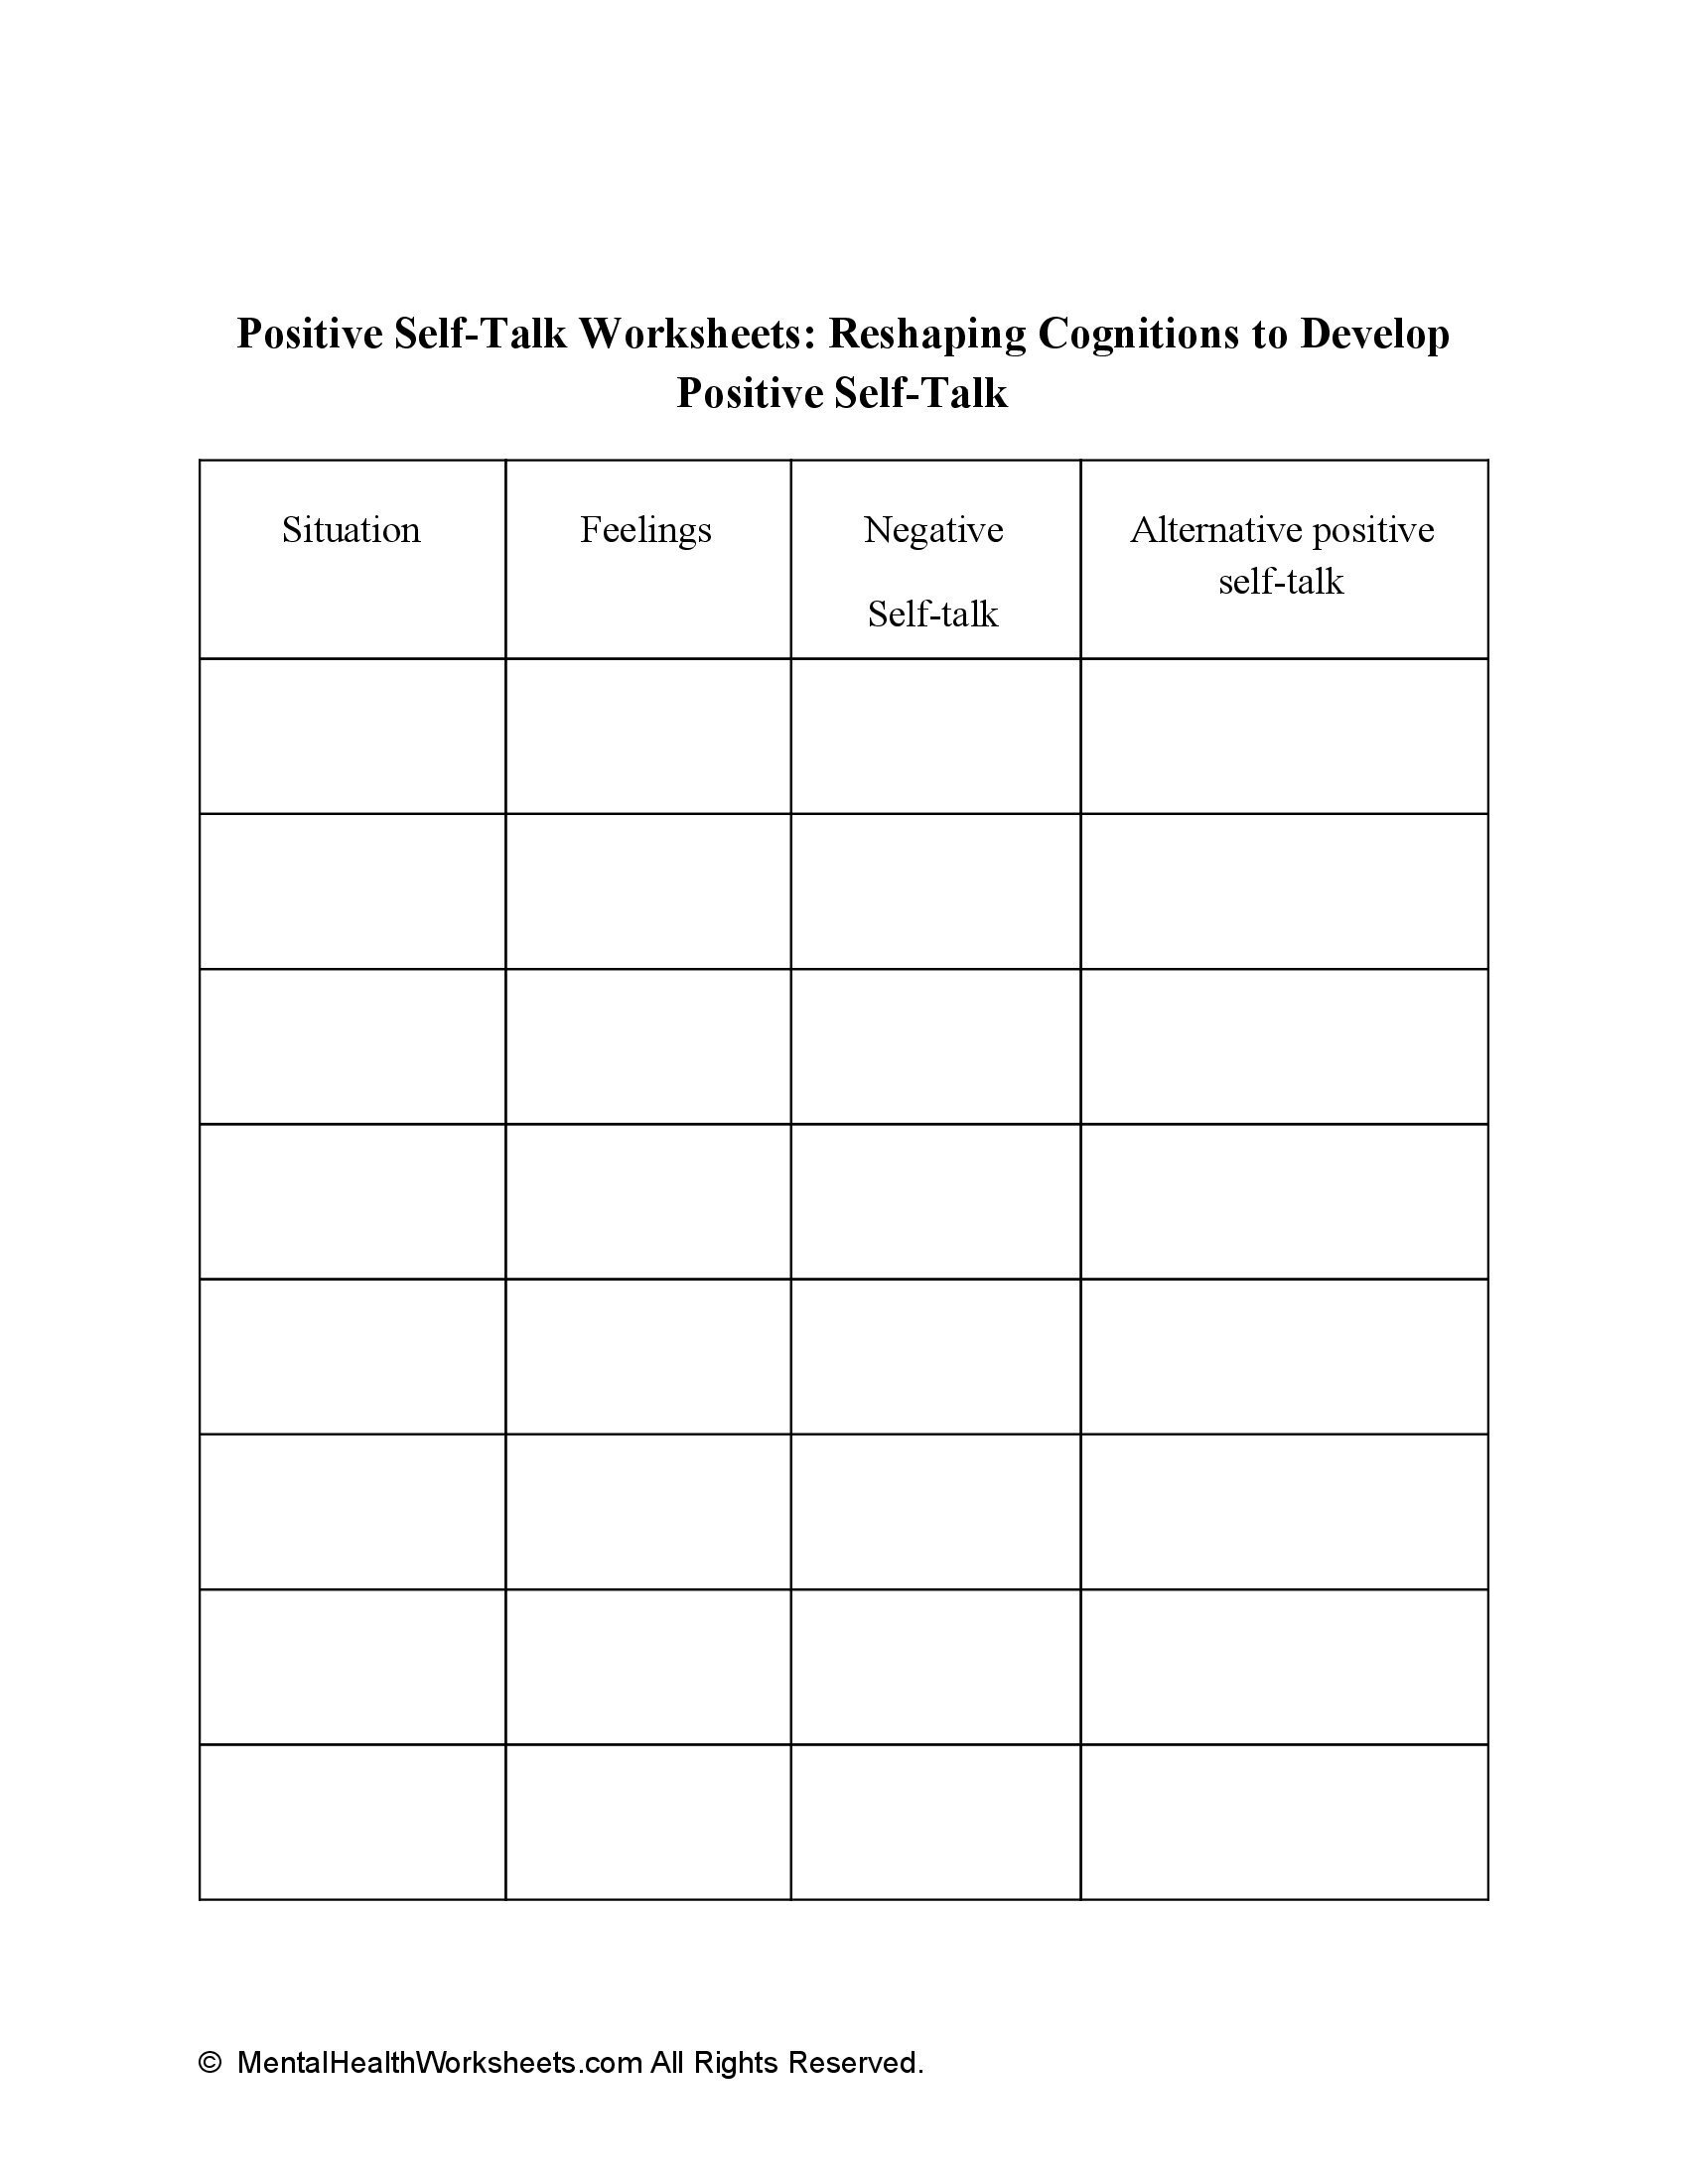 Positive Self-Talk Worksheets: Reshaping Cognitions to Develop Positive Self-Talk